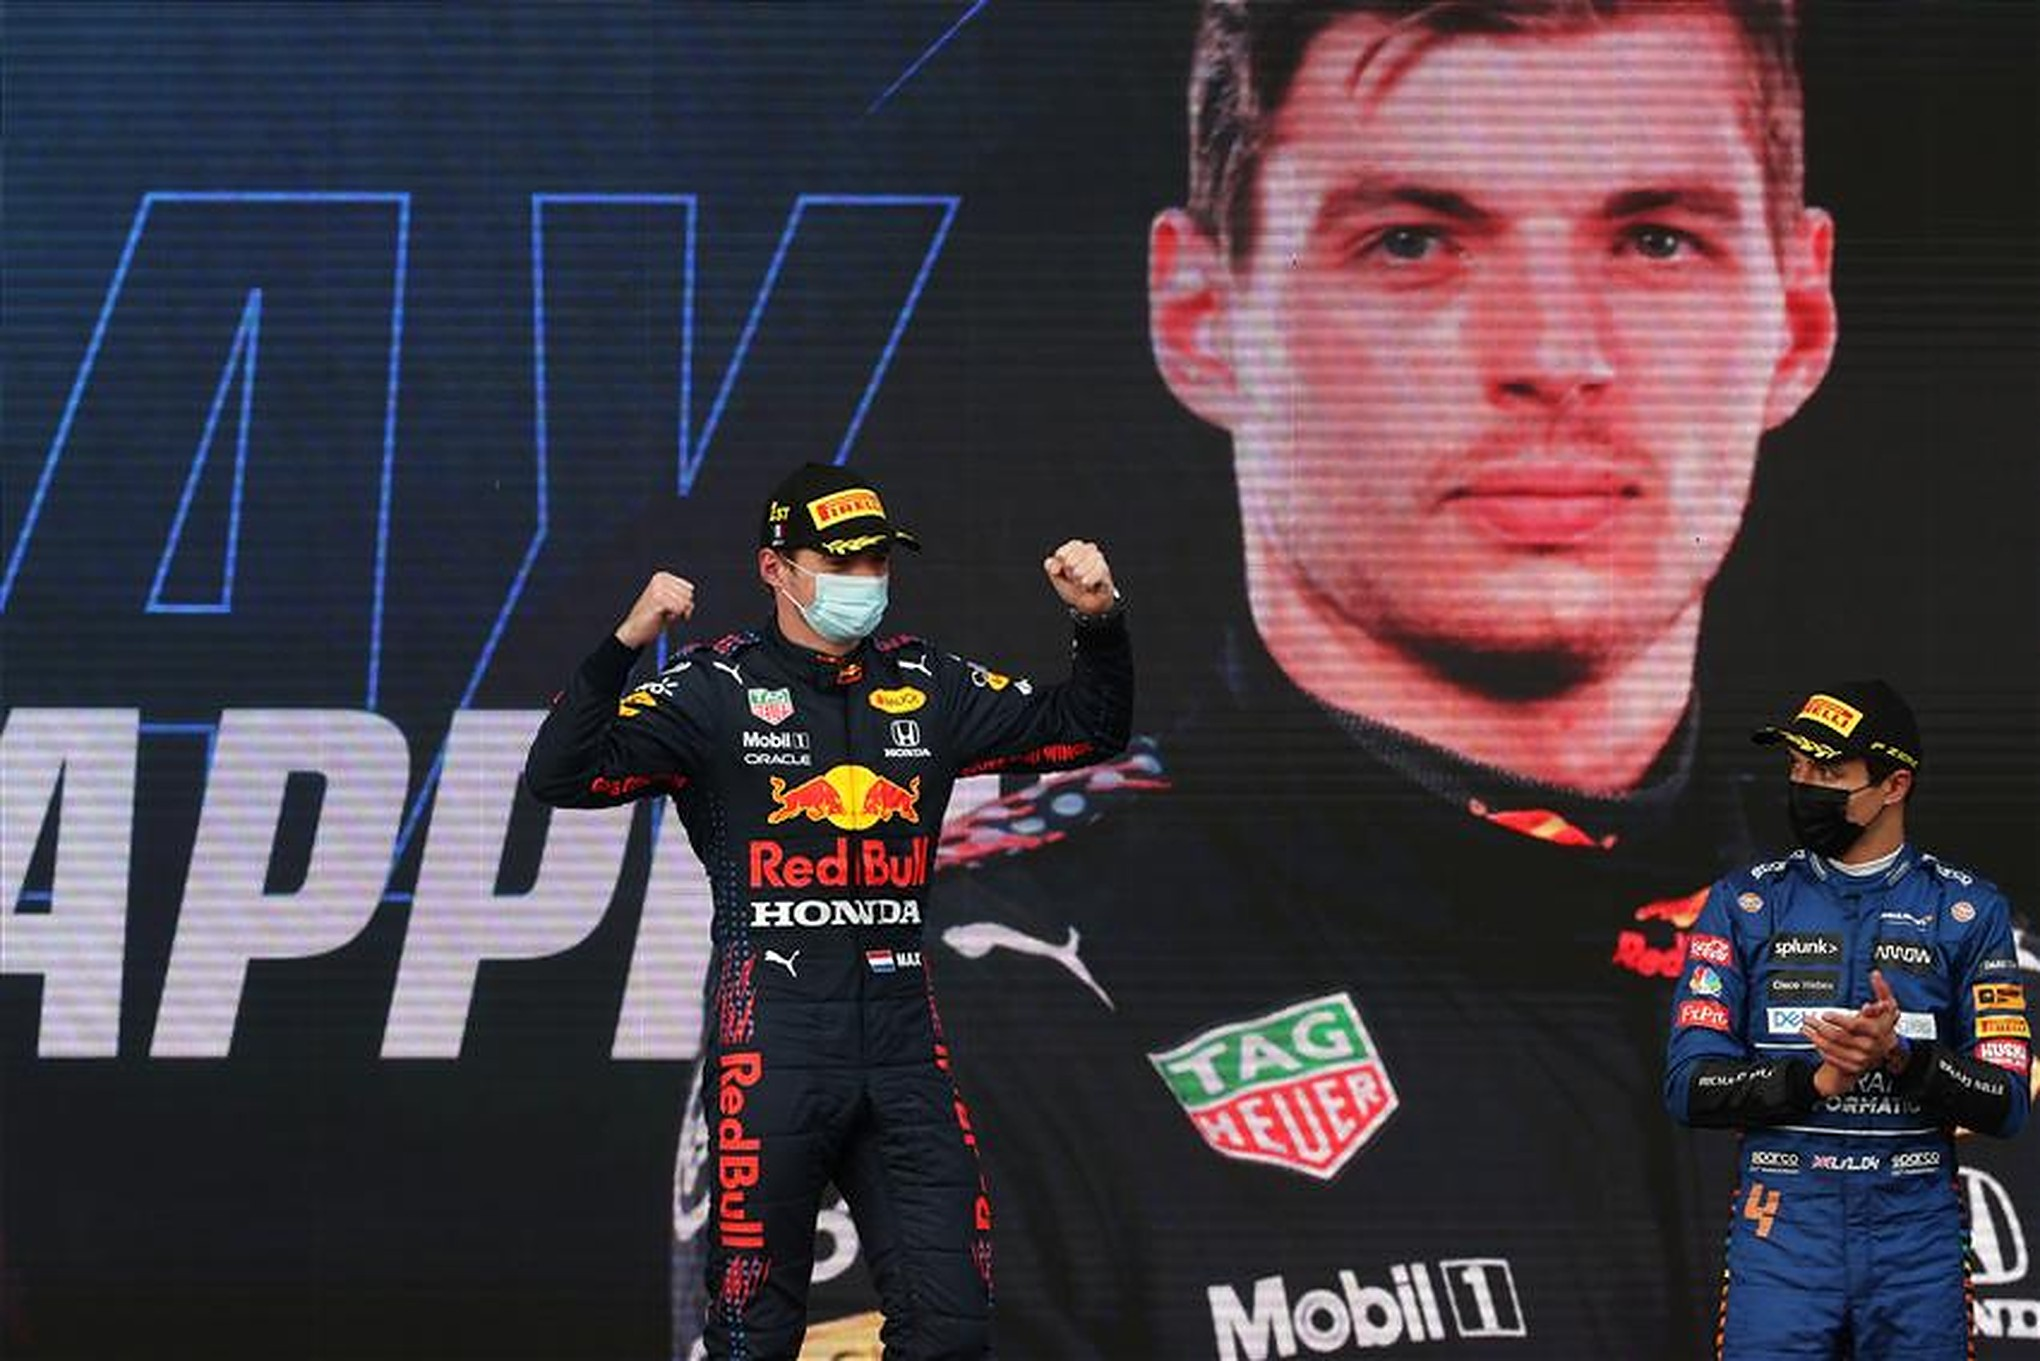 Max Verstappen wins 2021 Emilia Romagna Grand Prix - Formula1news.co.uk